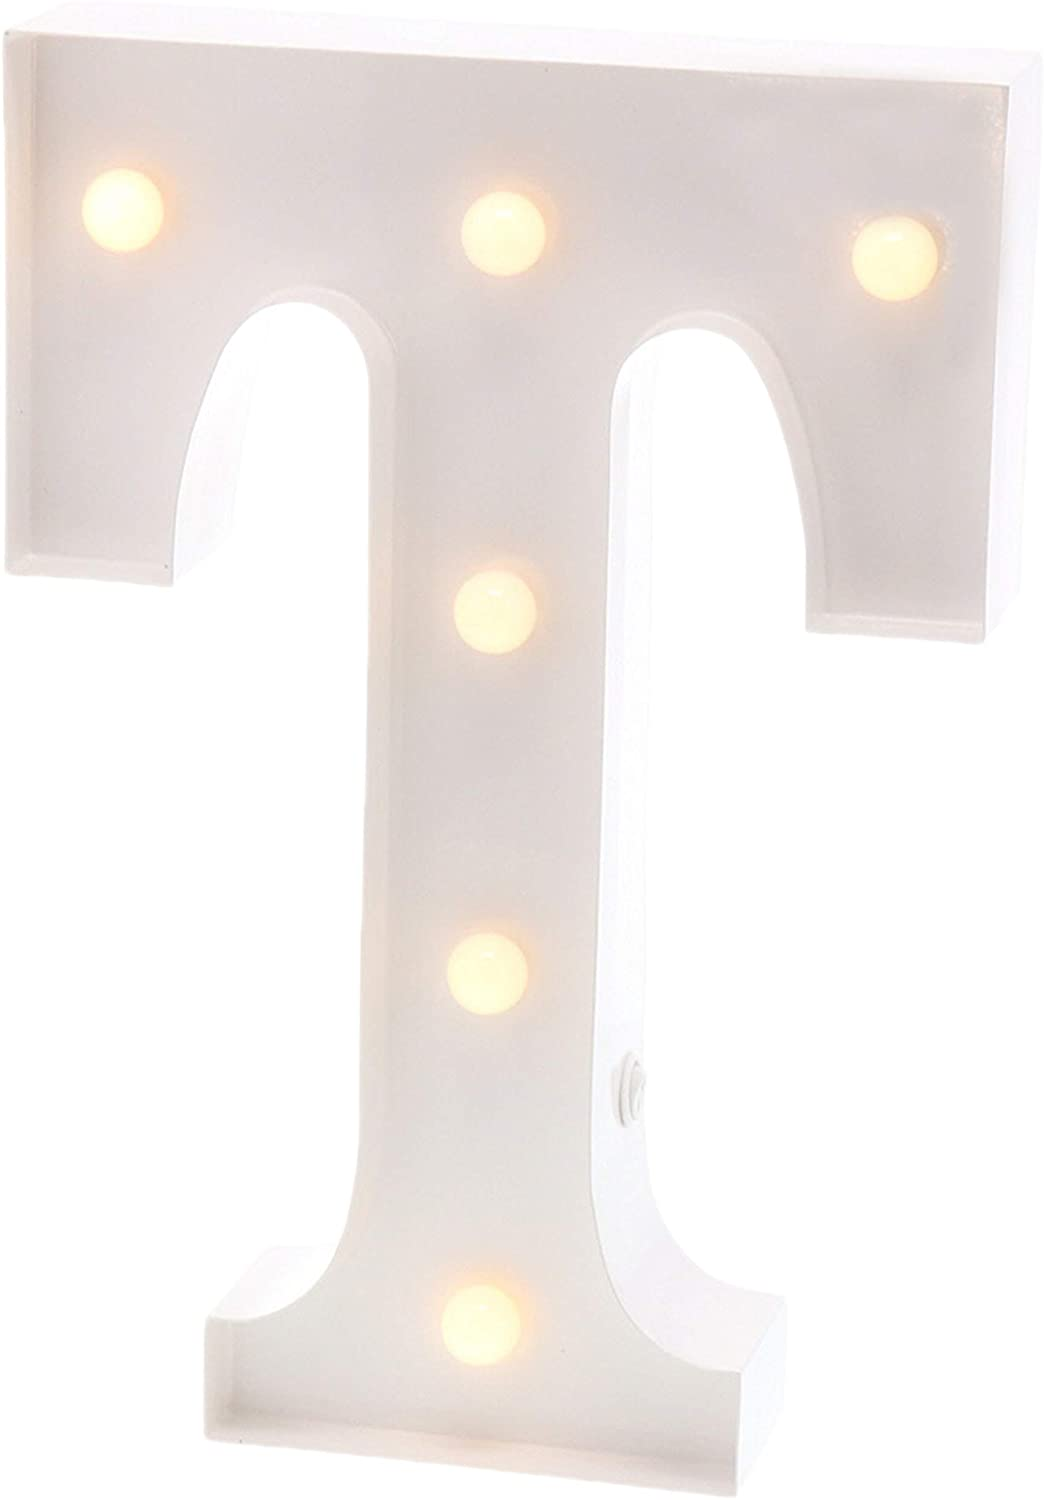 "Barnyard Designs Metal Marquee Letter T Light Up Wall Initial Wedding, Bar, Home and Nursery Letter Decoration 12"" (White)"